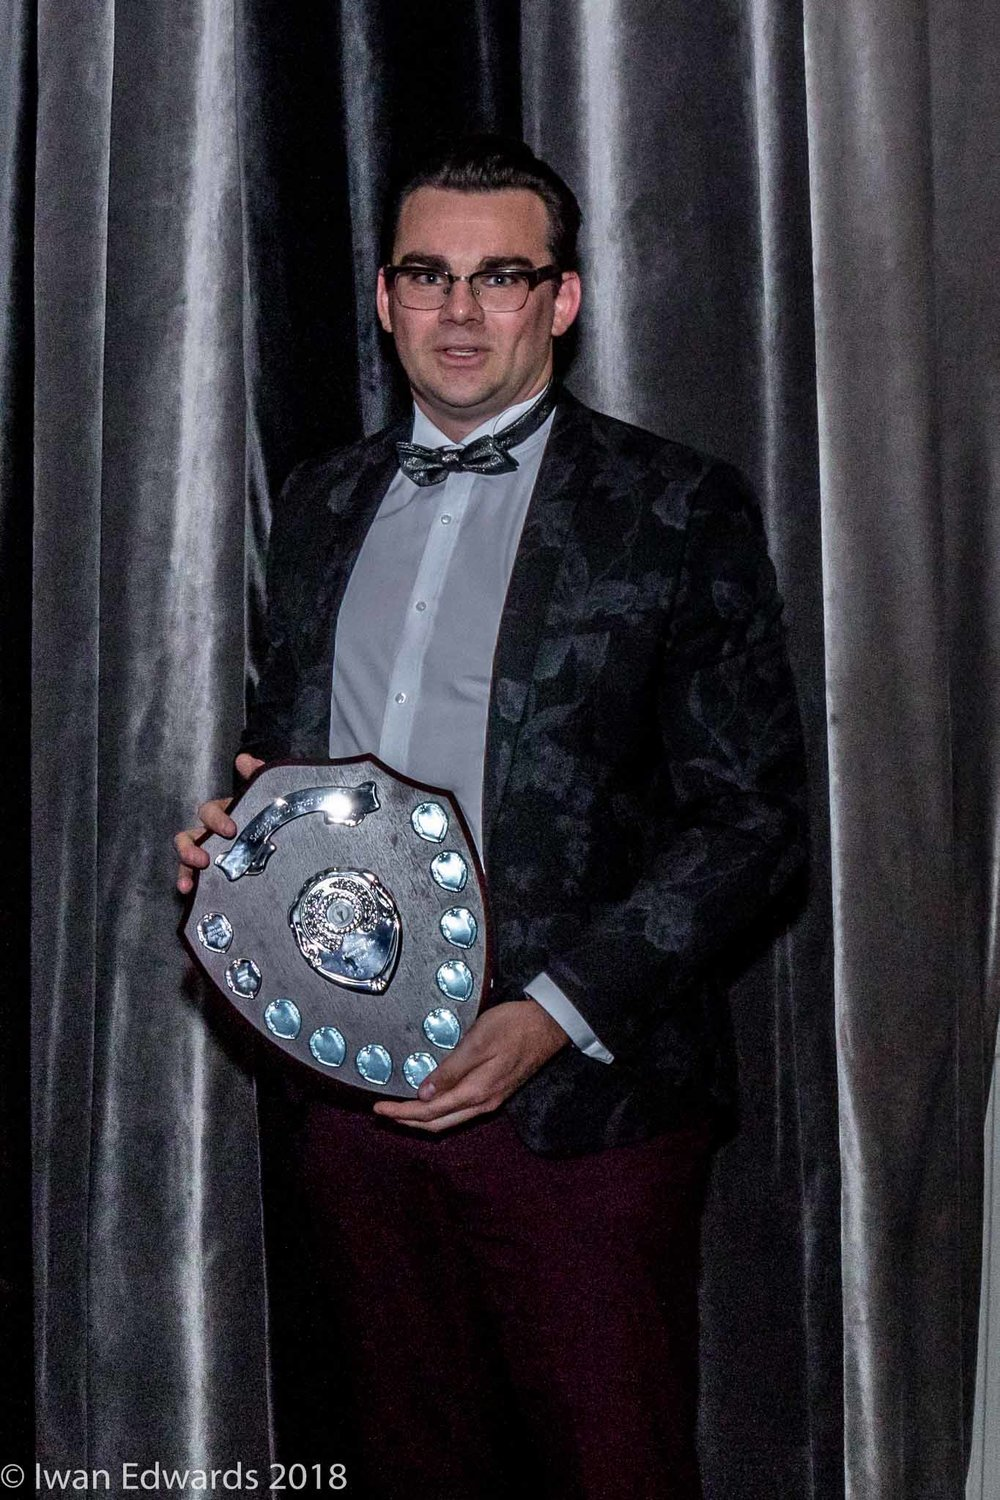 Saxons Player of the Year   John Pope